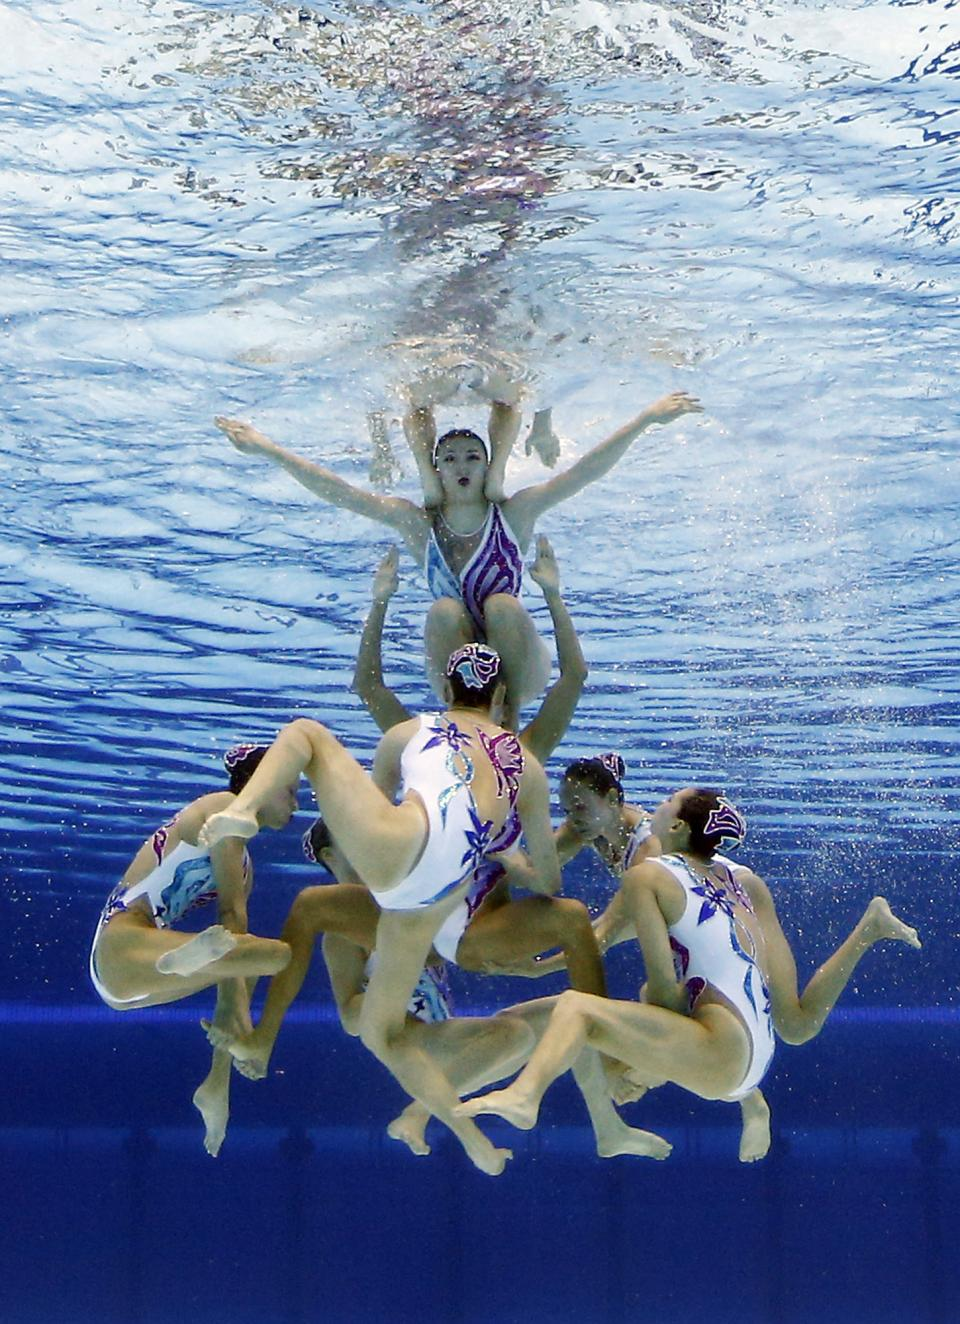 The team from China competes during the synchronized swimming team free routine final at the Aquatics Centre in the Olympic Park during the 2012 Summer Olympics in London, Friday, Aug. 10, 2012. China took the silver medal in the event. (AP Photo/Mark J. Terrill)